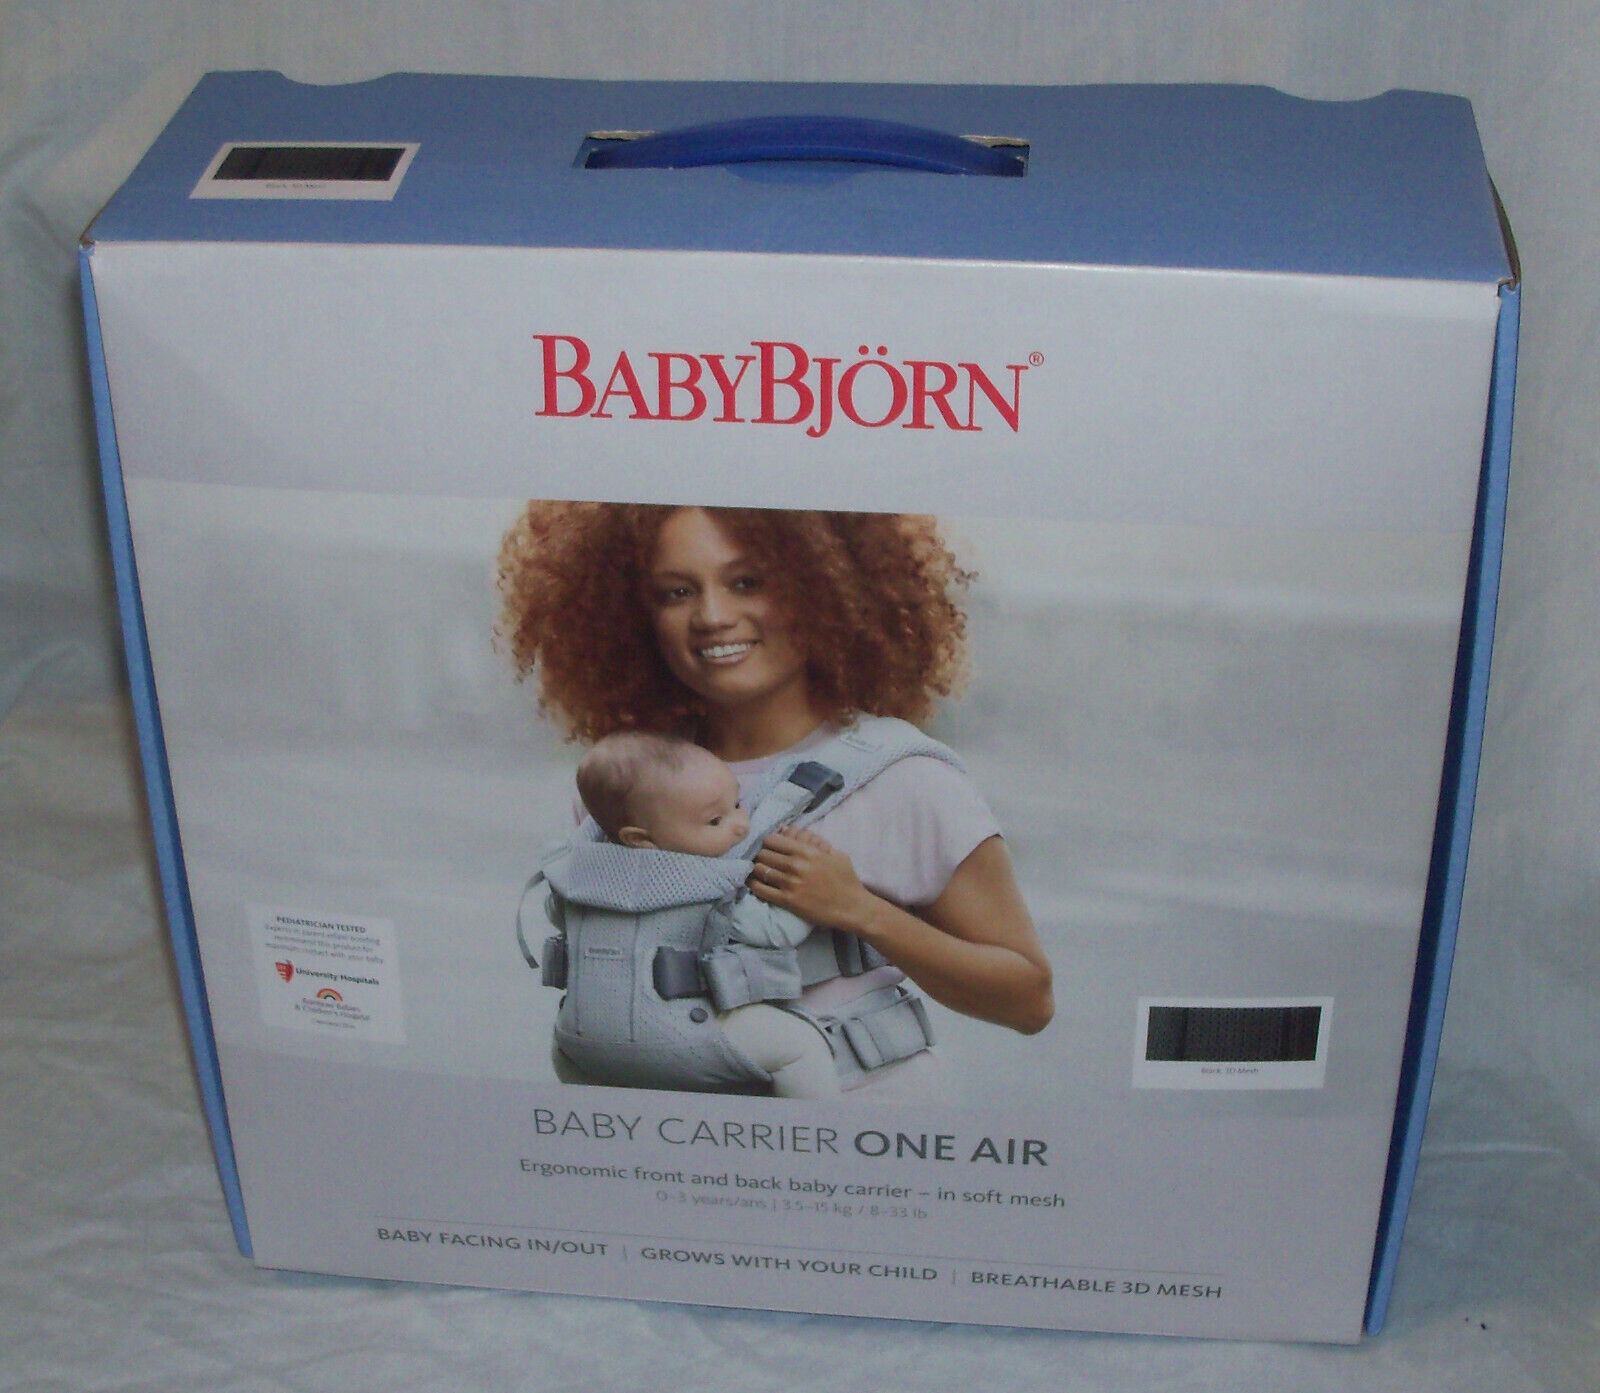 BABYBJORN Baby Carrier One Air Breathable 3D Mesh Grow With